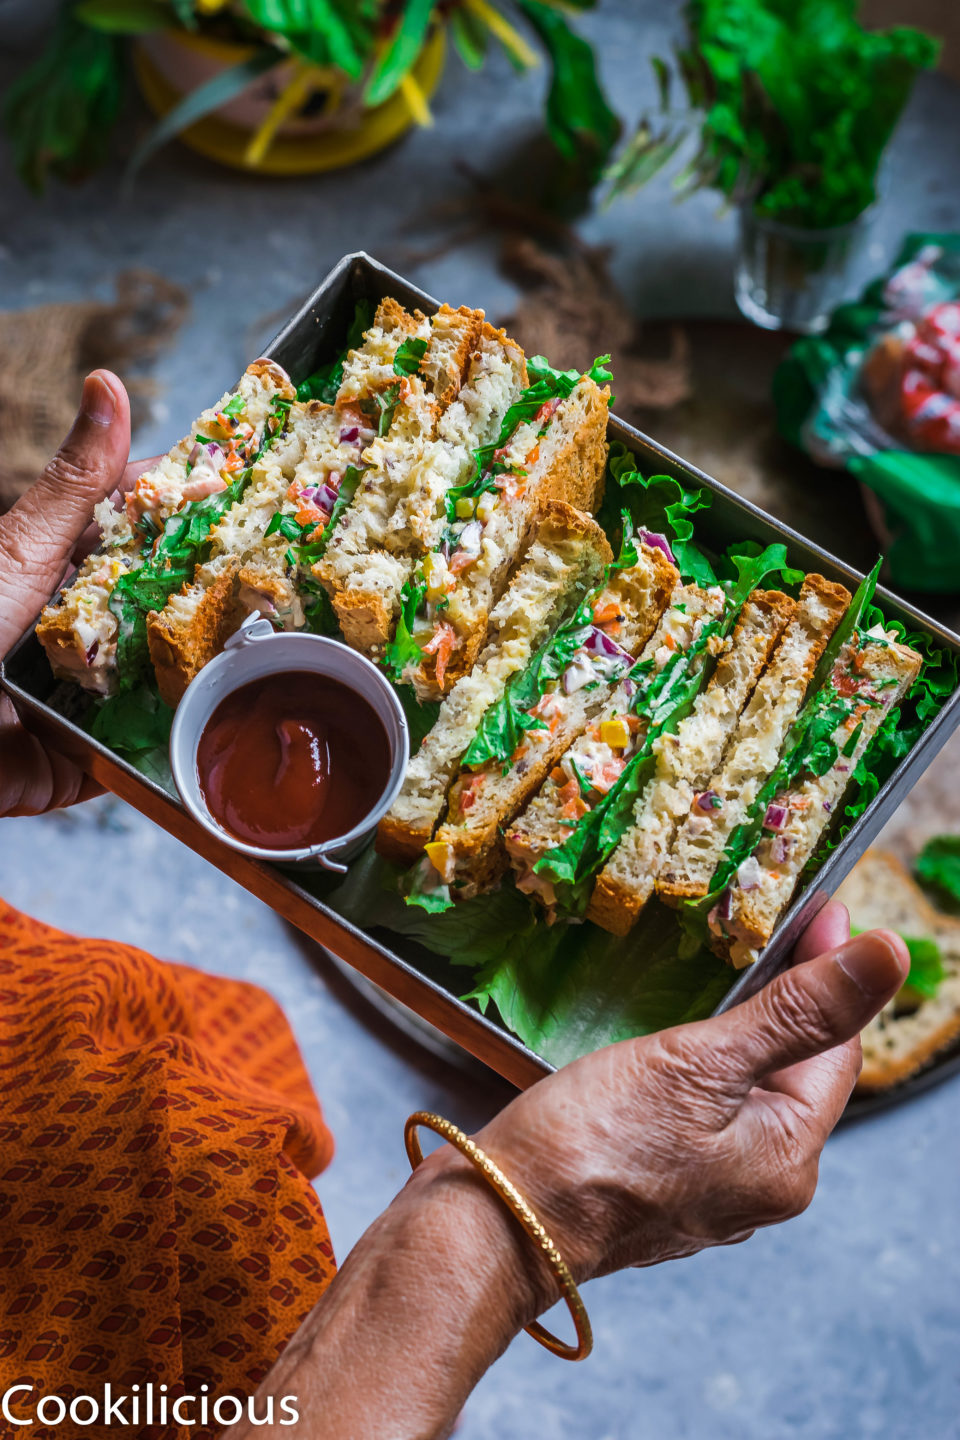 a set of hands holding a tray filled with Indian Style Spiced Yogurt Sandwiches